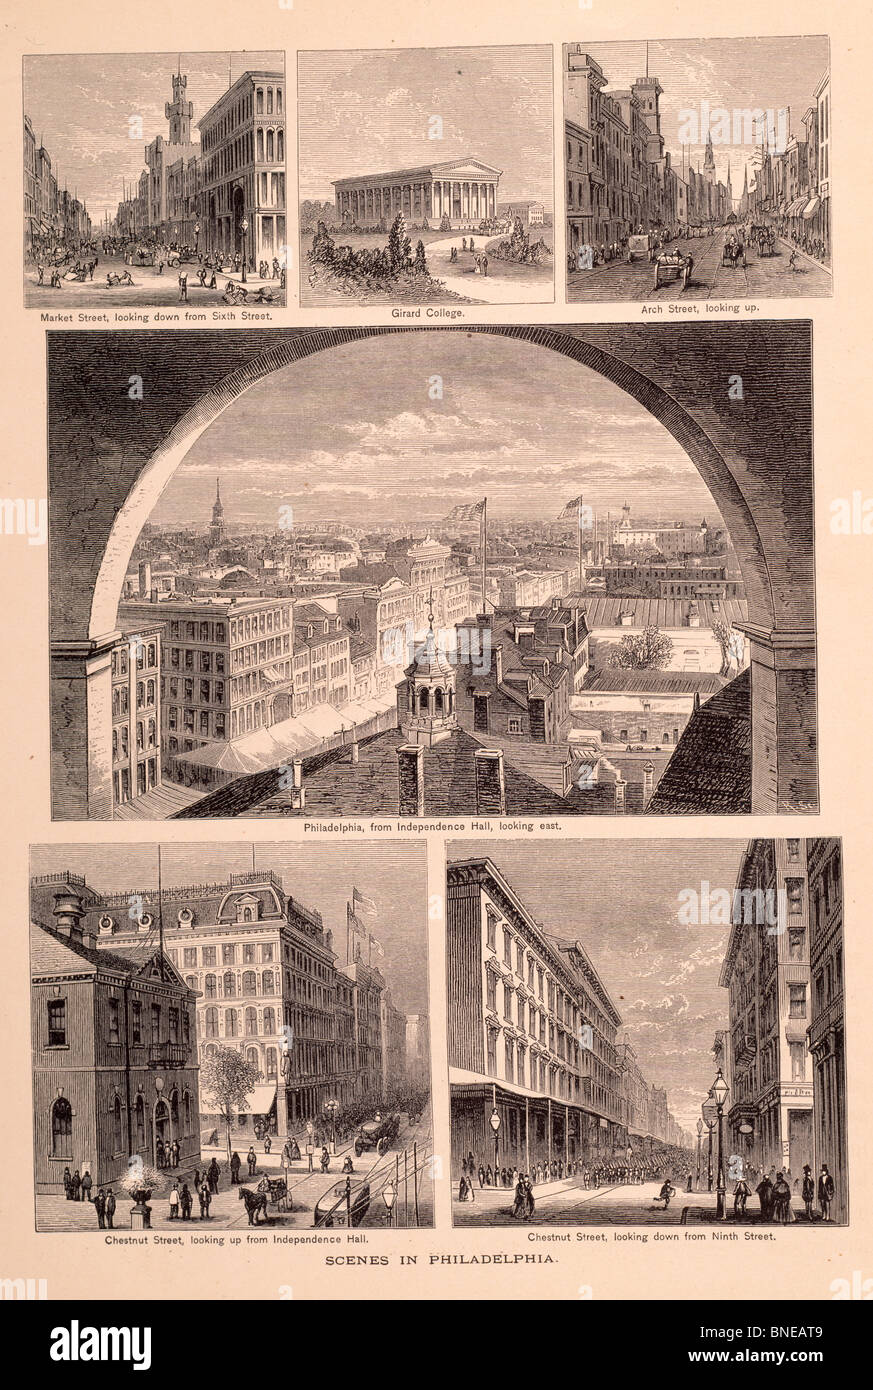 Scenes In Philadelphia by unknown artist,  etching - Stock Image